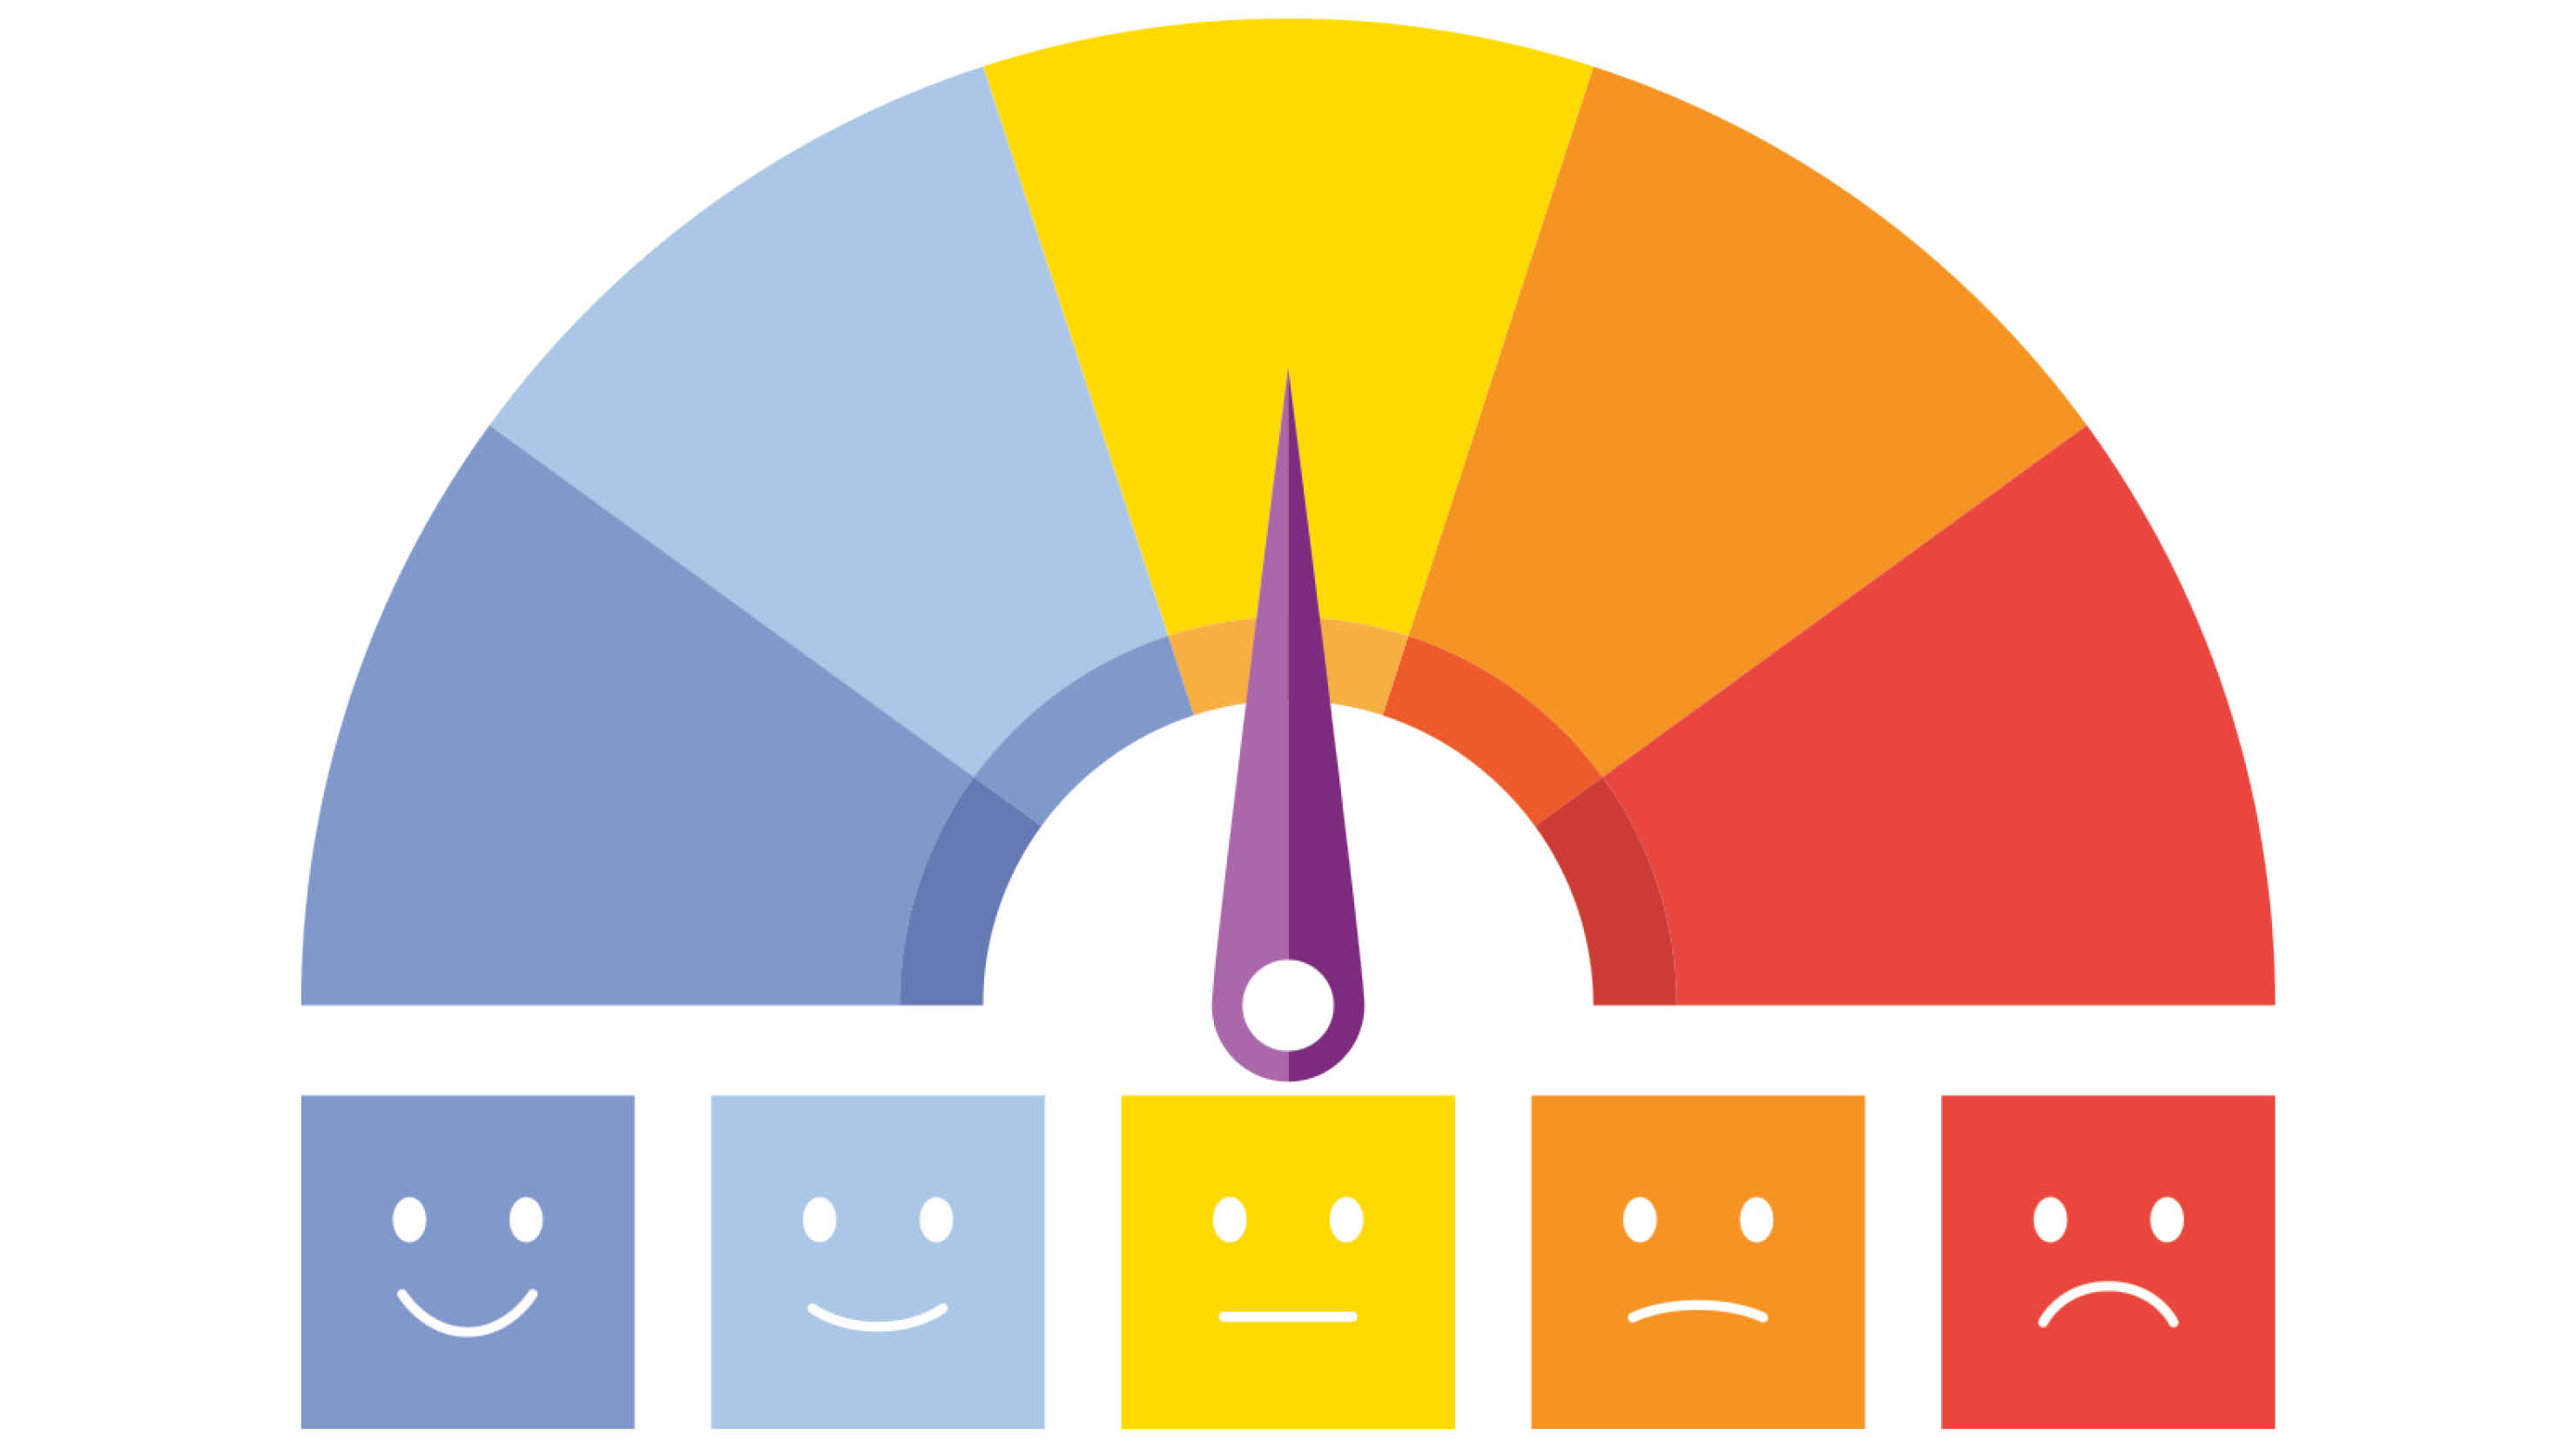 Meter with faces showing different emotions